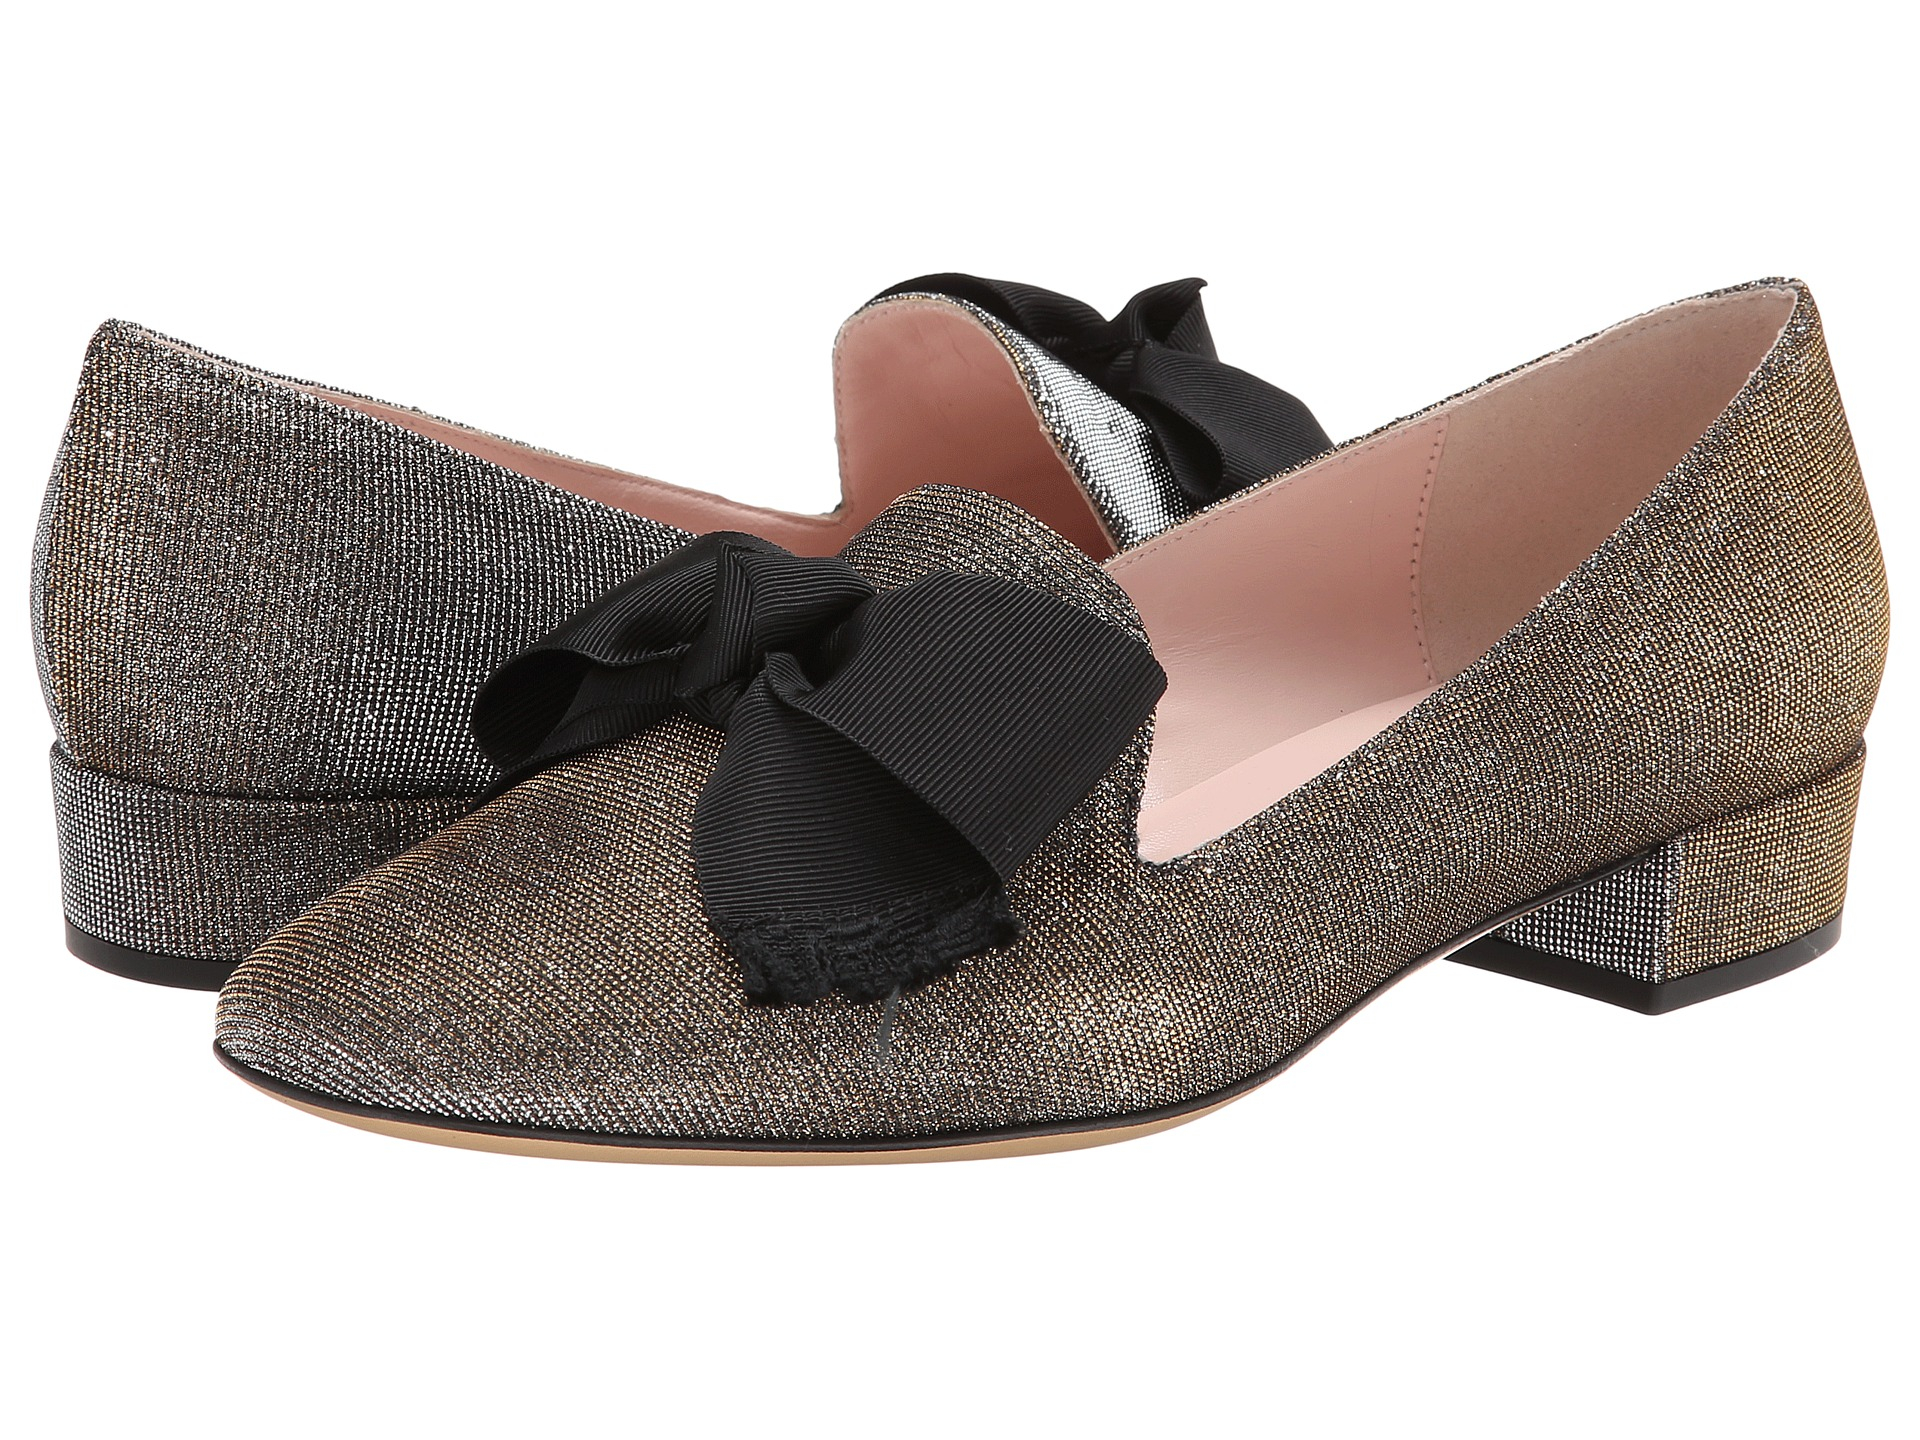 0b92bc4b29d3 Kate Spade Gino Glitter Bow Loafer Pump in Gray - Lyst